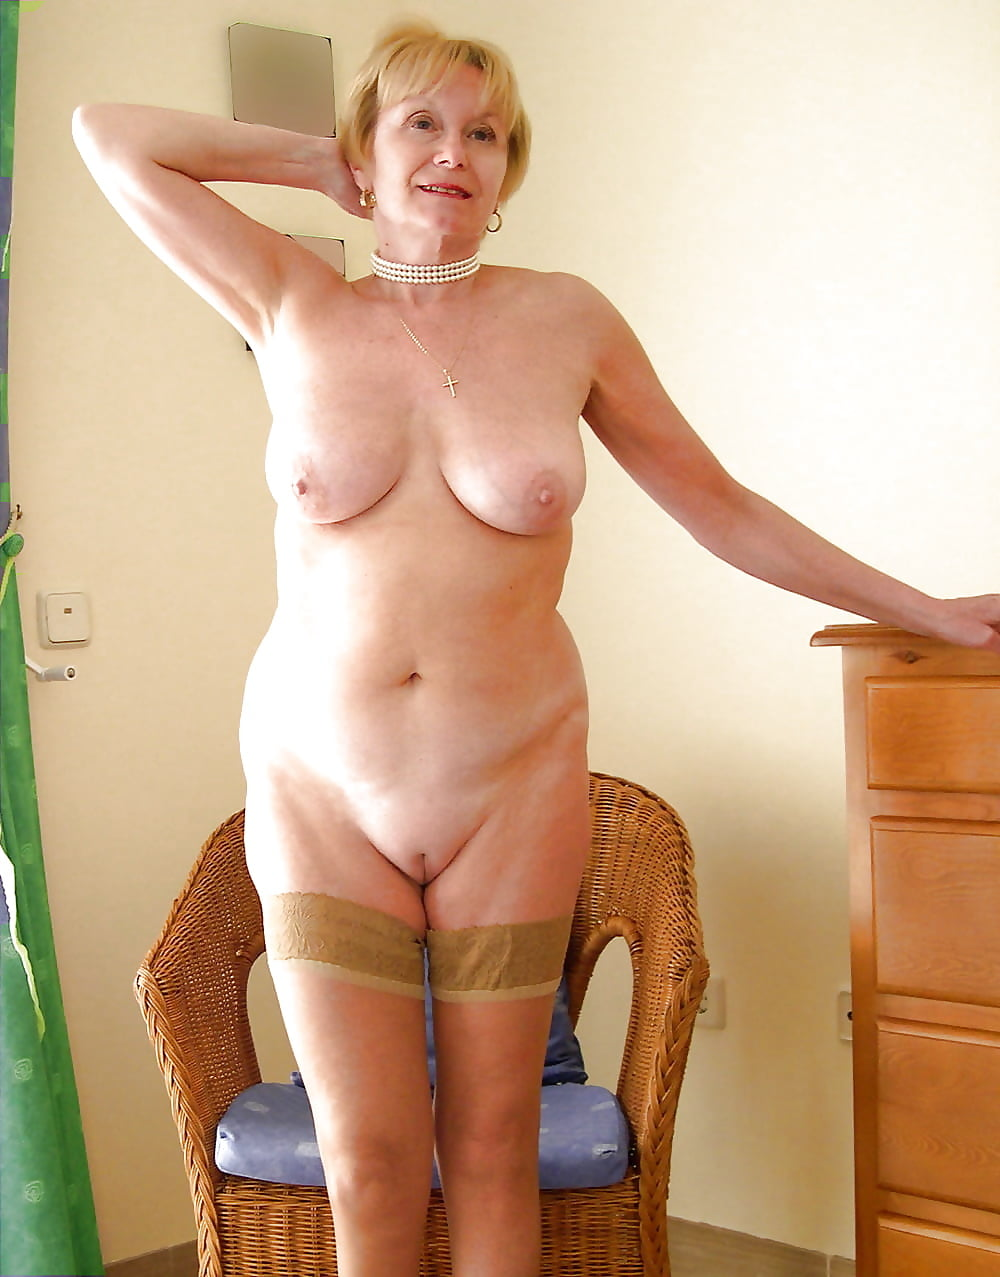 Tequila hot nude granny s very very